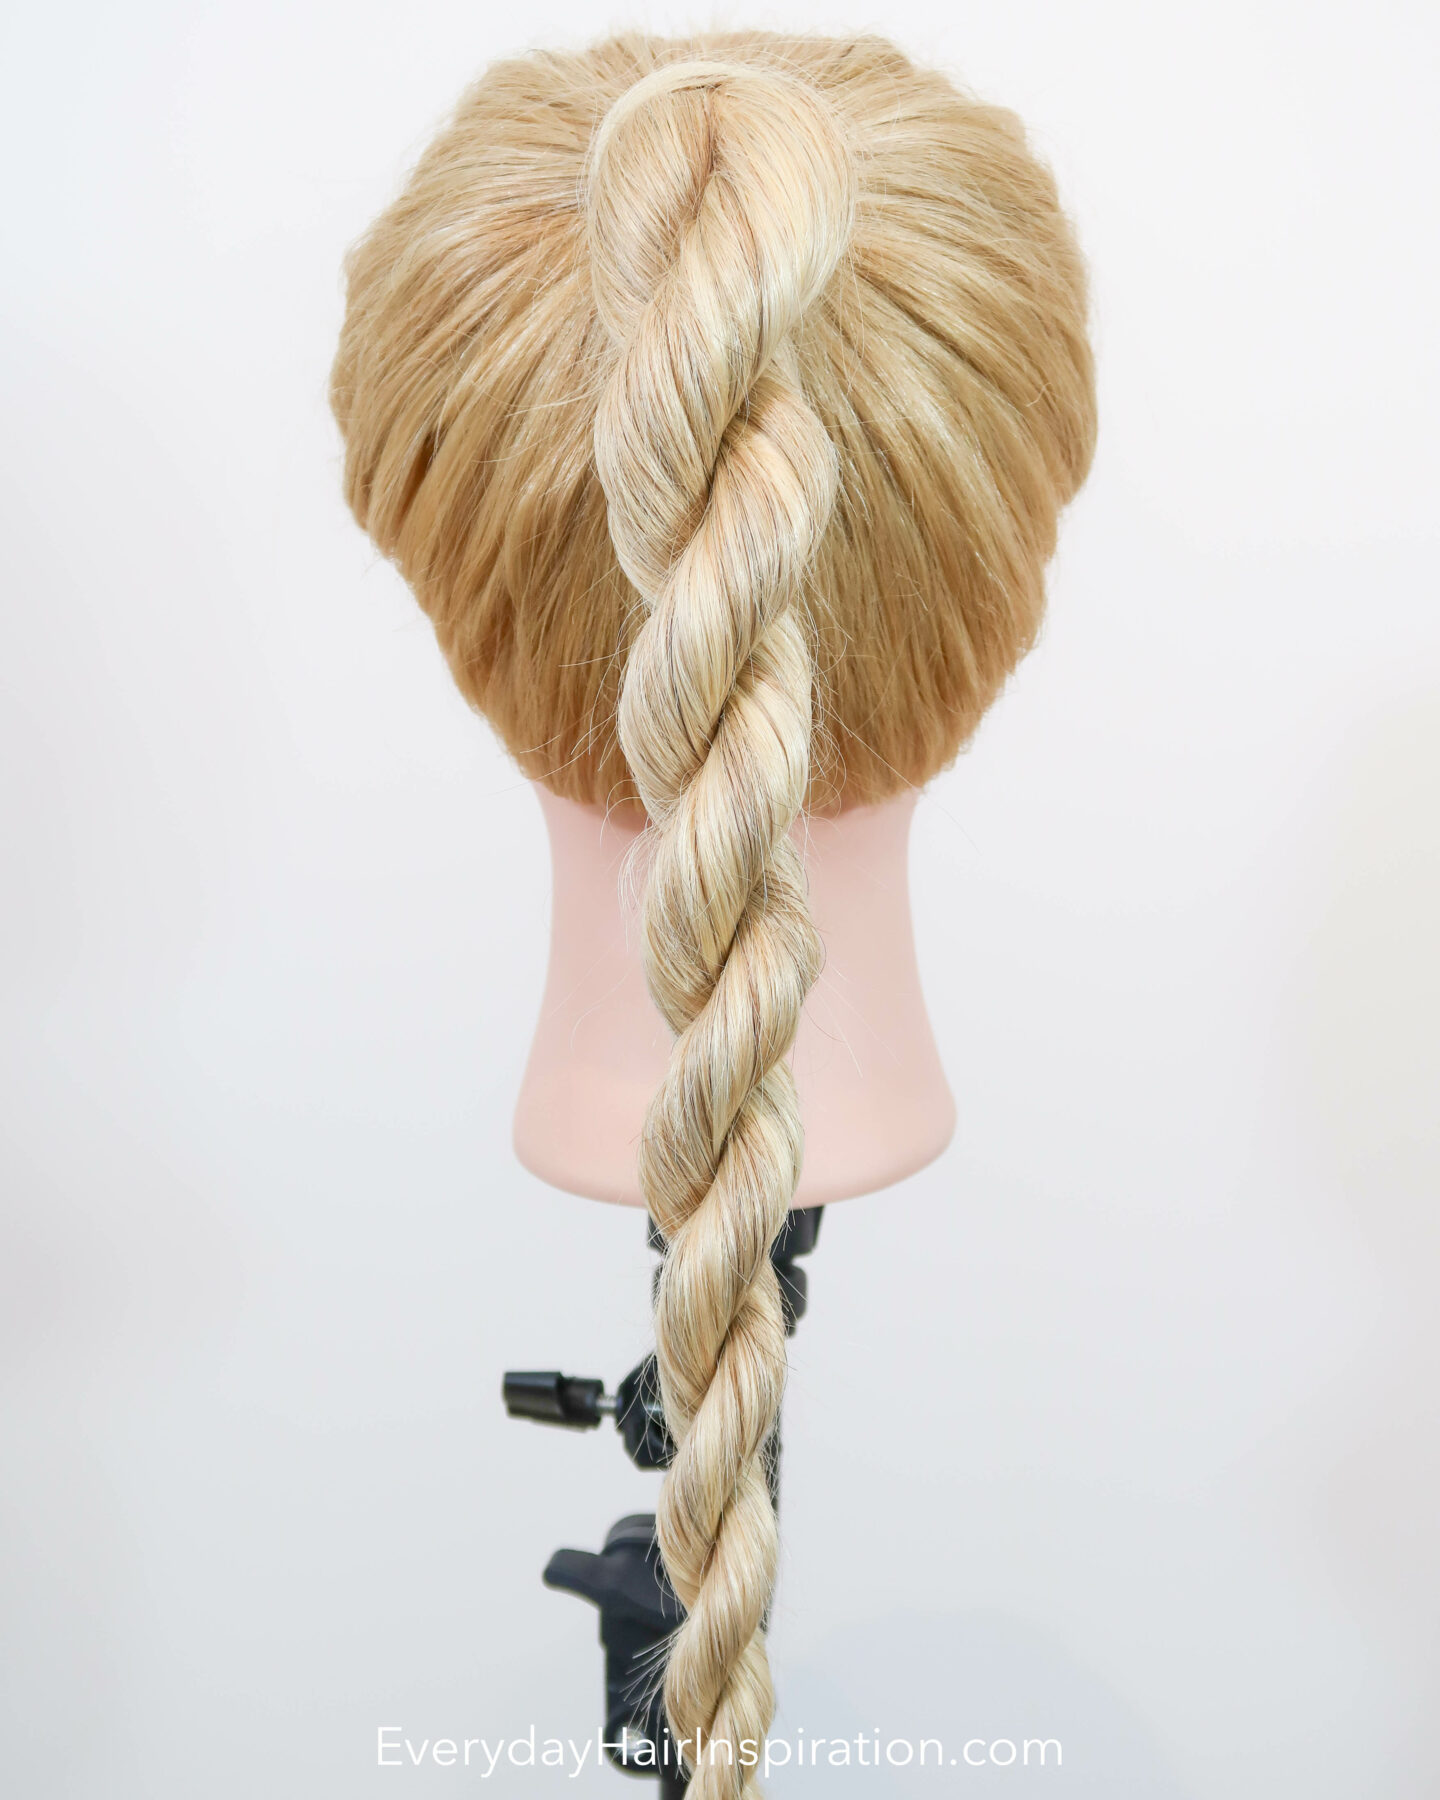 Blonde hairdresser doll seen from the back with a high ponytail with a rope braid, braided in the hair.